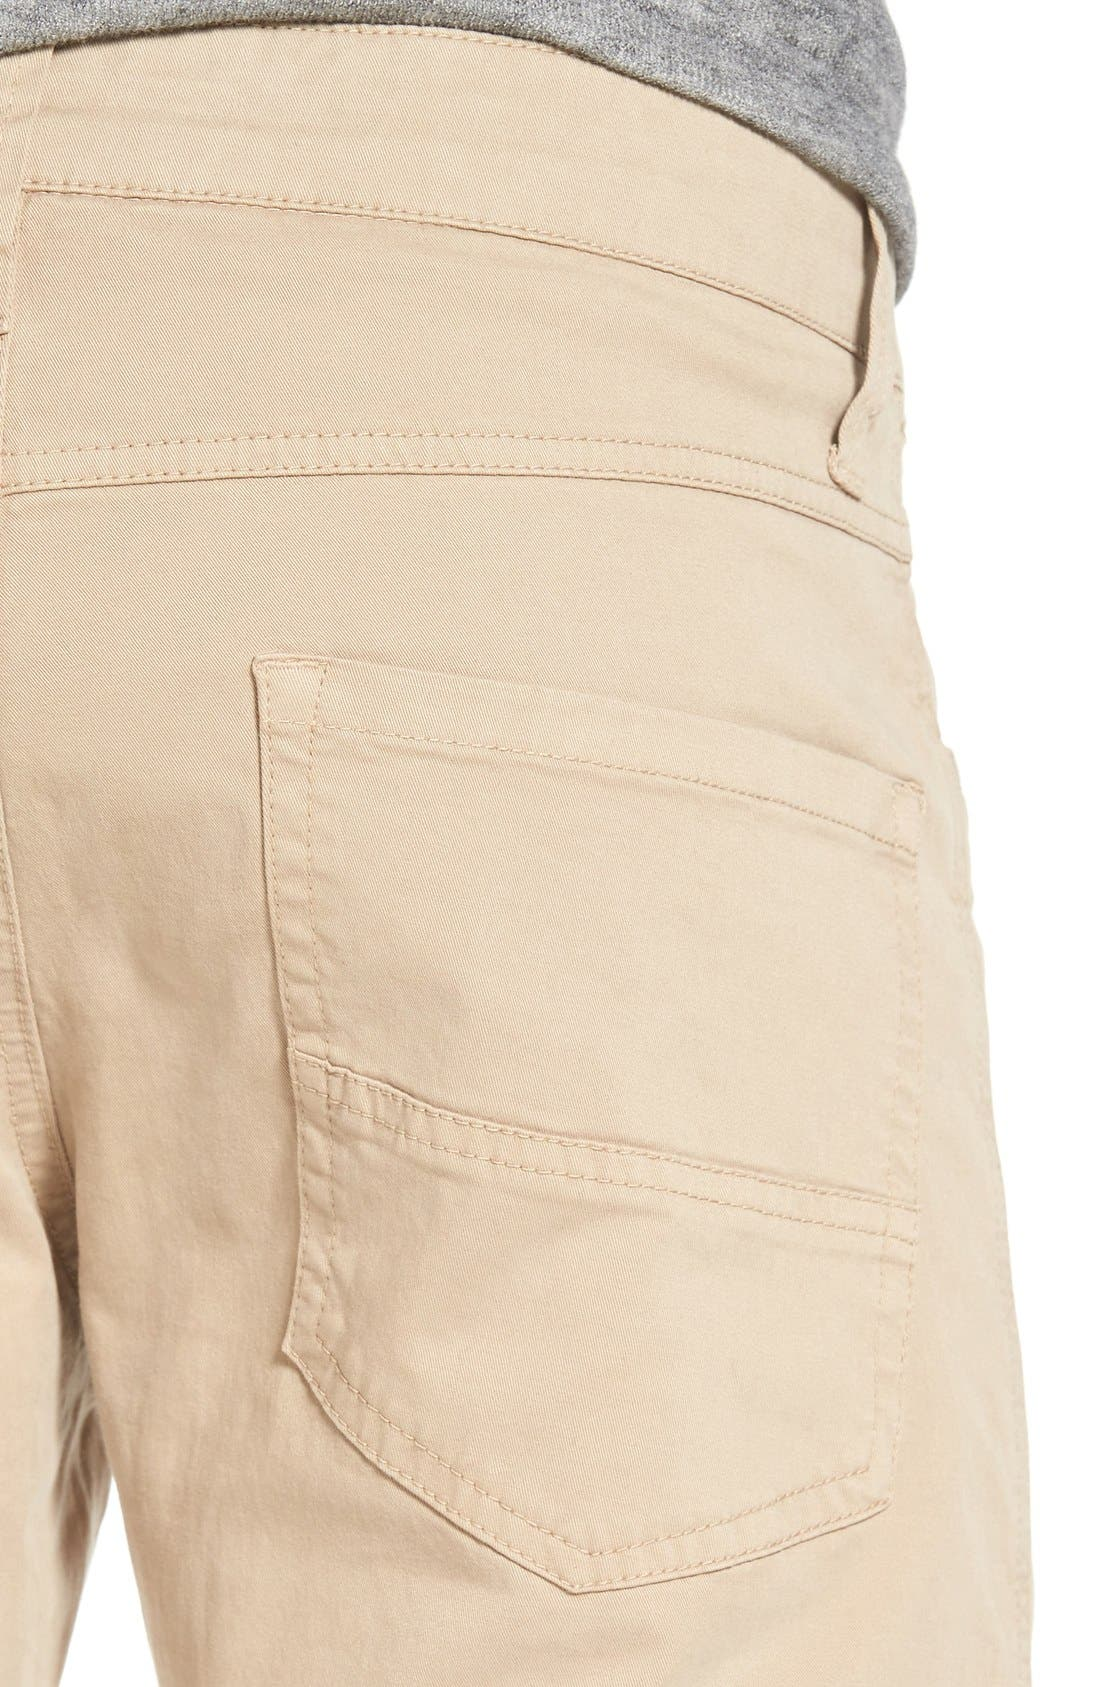 'Sunny' Slim Fit Stretch Twill Pants,                             Alternate thumbnail 4, color,                             Khaki